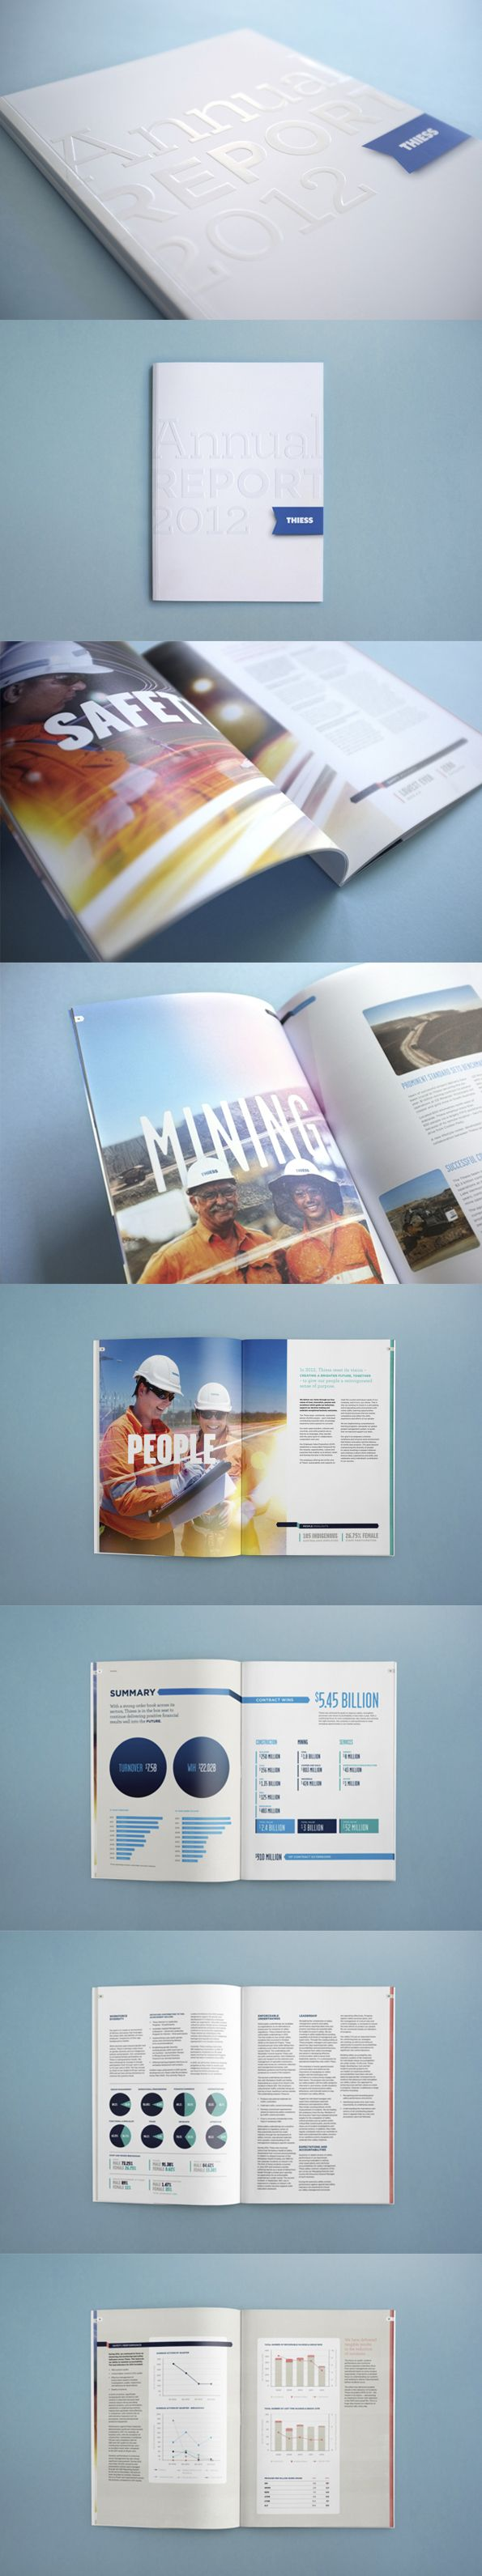 thesis on construction materials